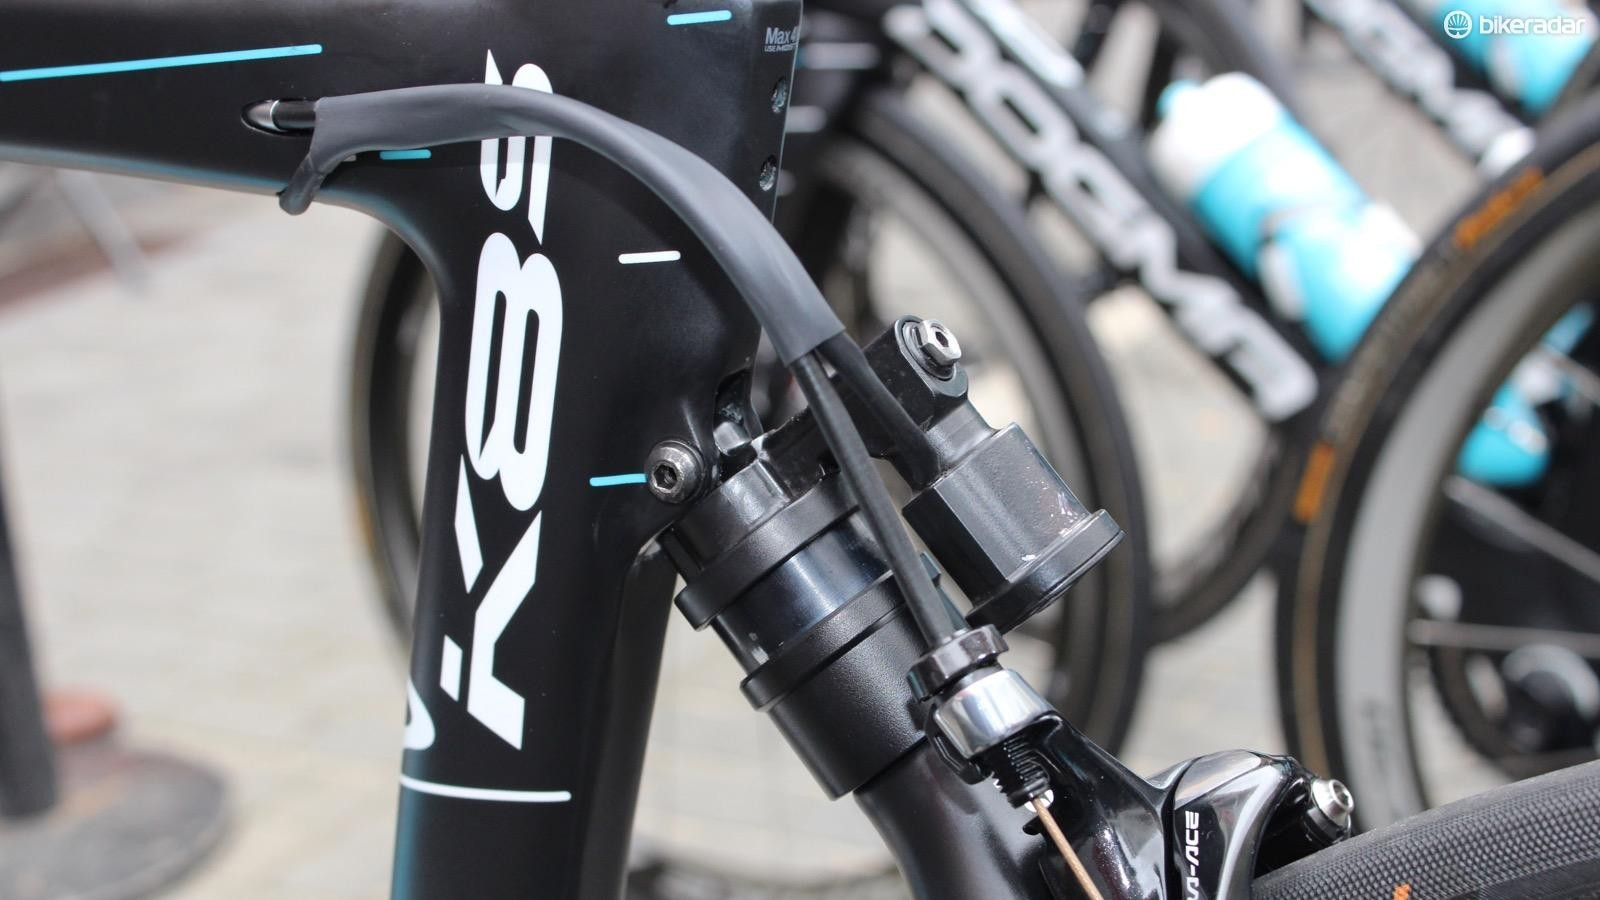 The normal Pinarello K8-S uses elastomer suspension. This hydraulic suspension is new